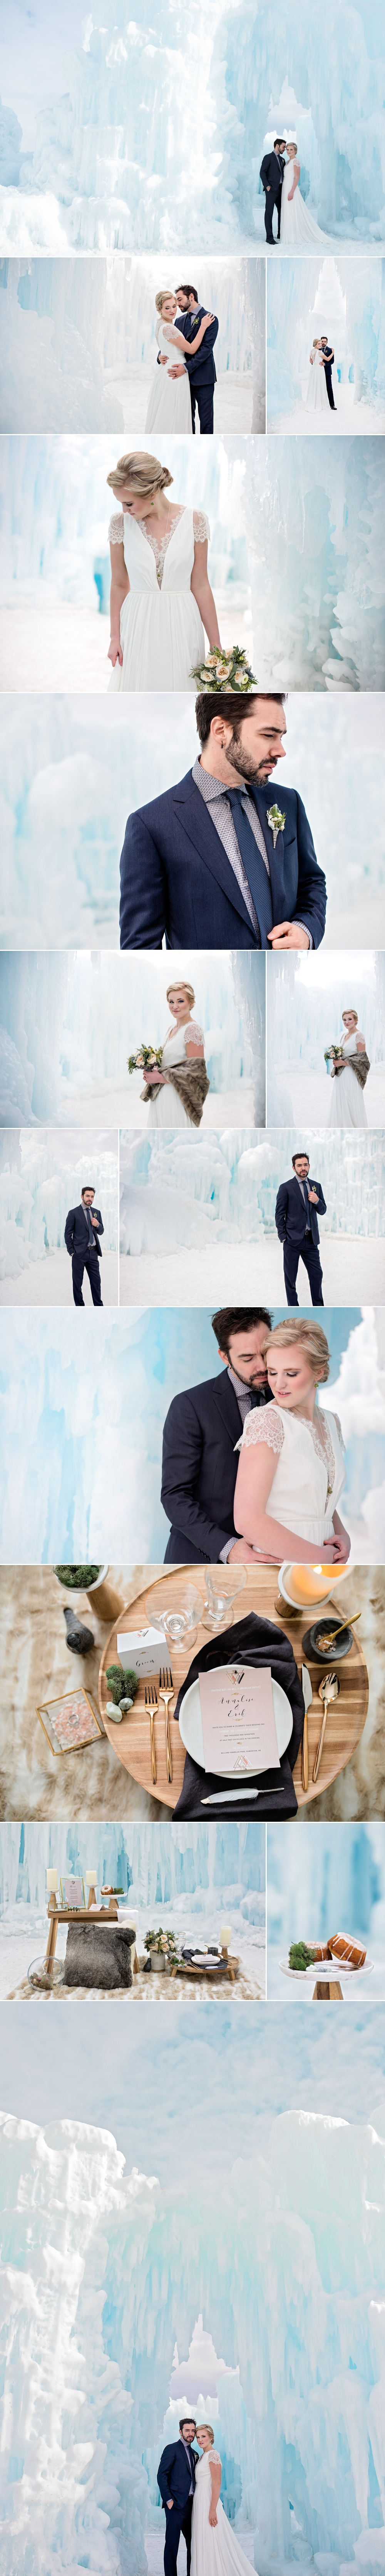 Ice Castle Nordic Inspired Styled Wedding by Friday Design + Photography in Edmonton, Alberta, Canada